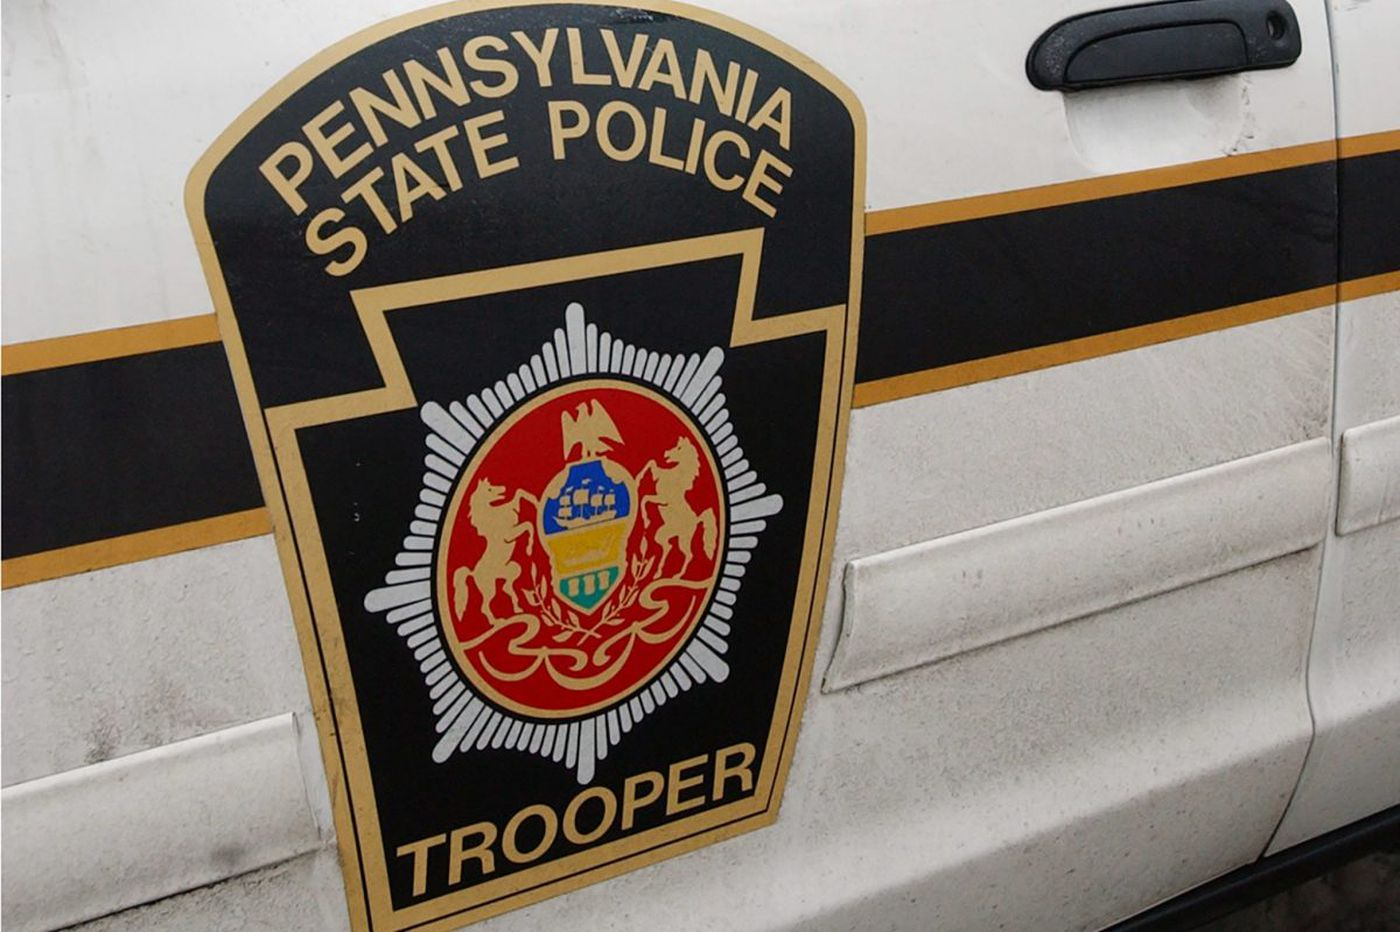 Gov. Wolf: State police OK to investigate itself in officer-involved shootings